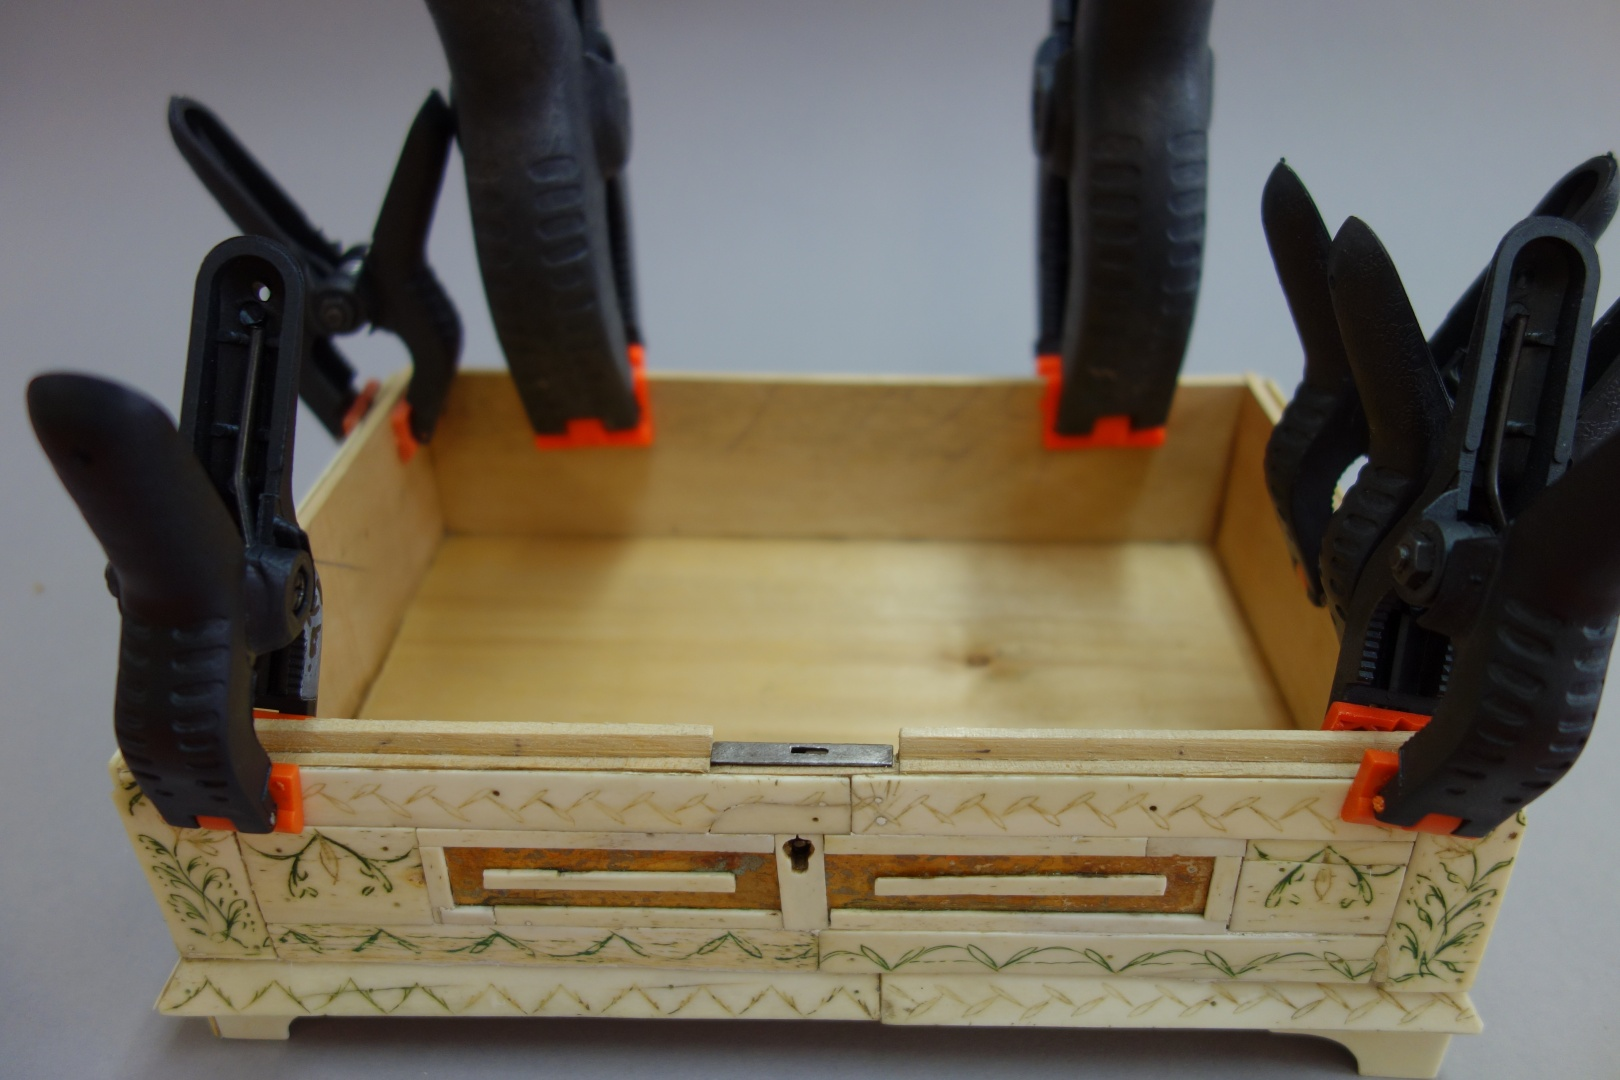 fig 15. To press the re-glued details clamps were used